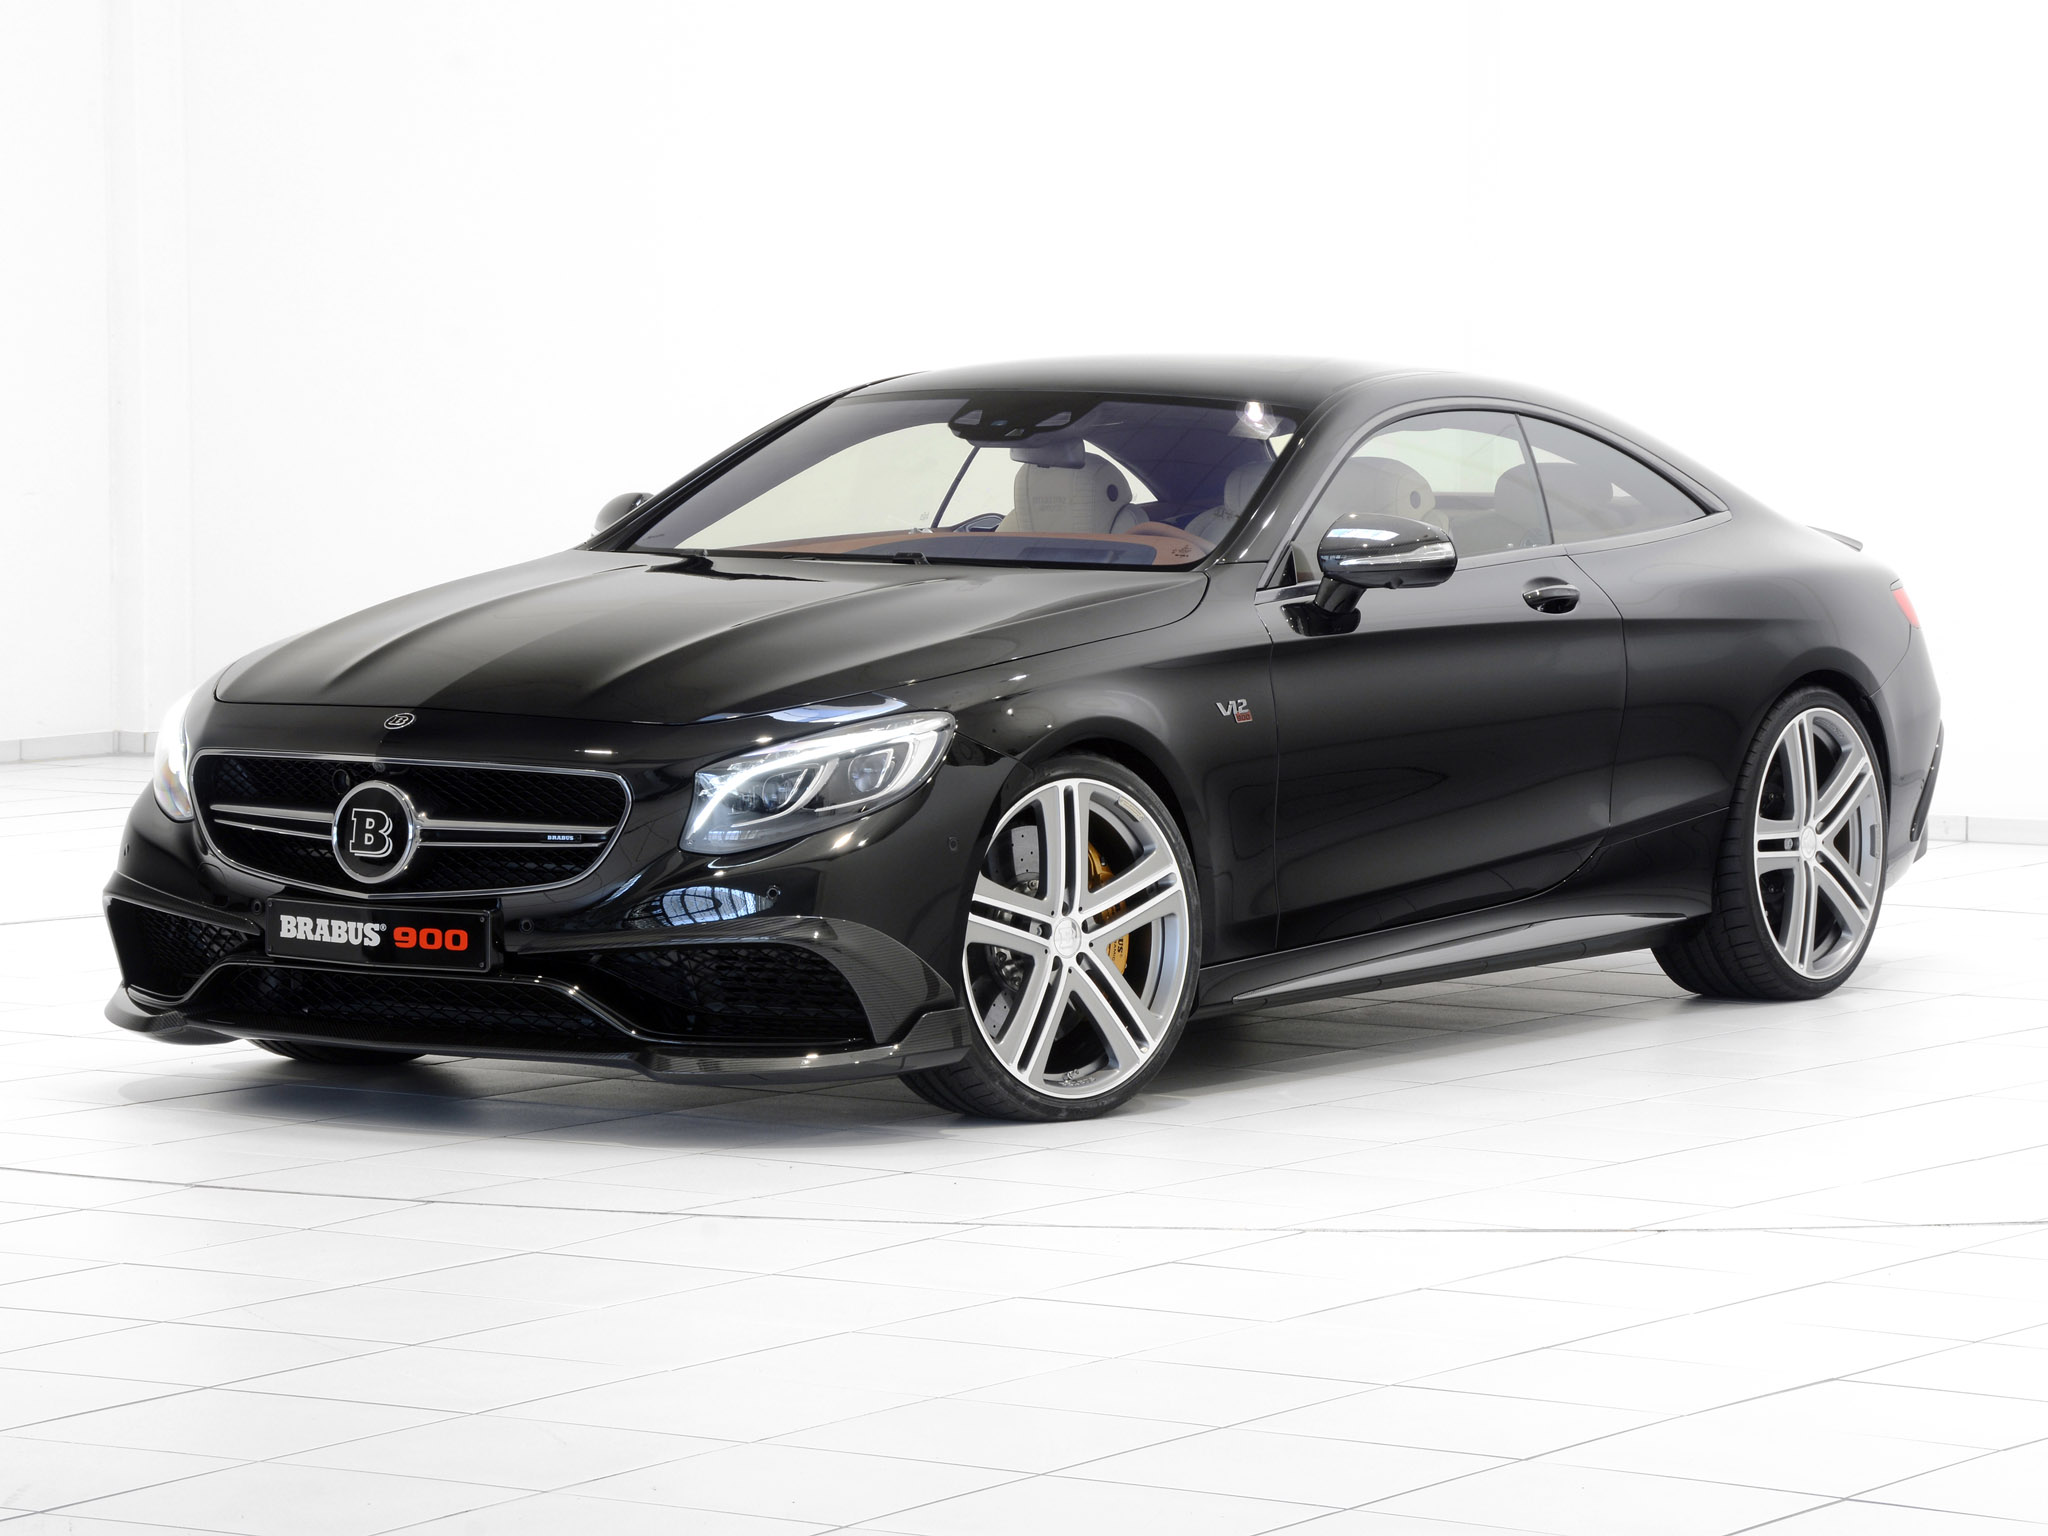 2016 Brabus - Mercedes S Coupe Rocket 900 C217